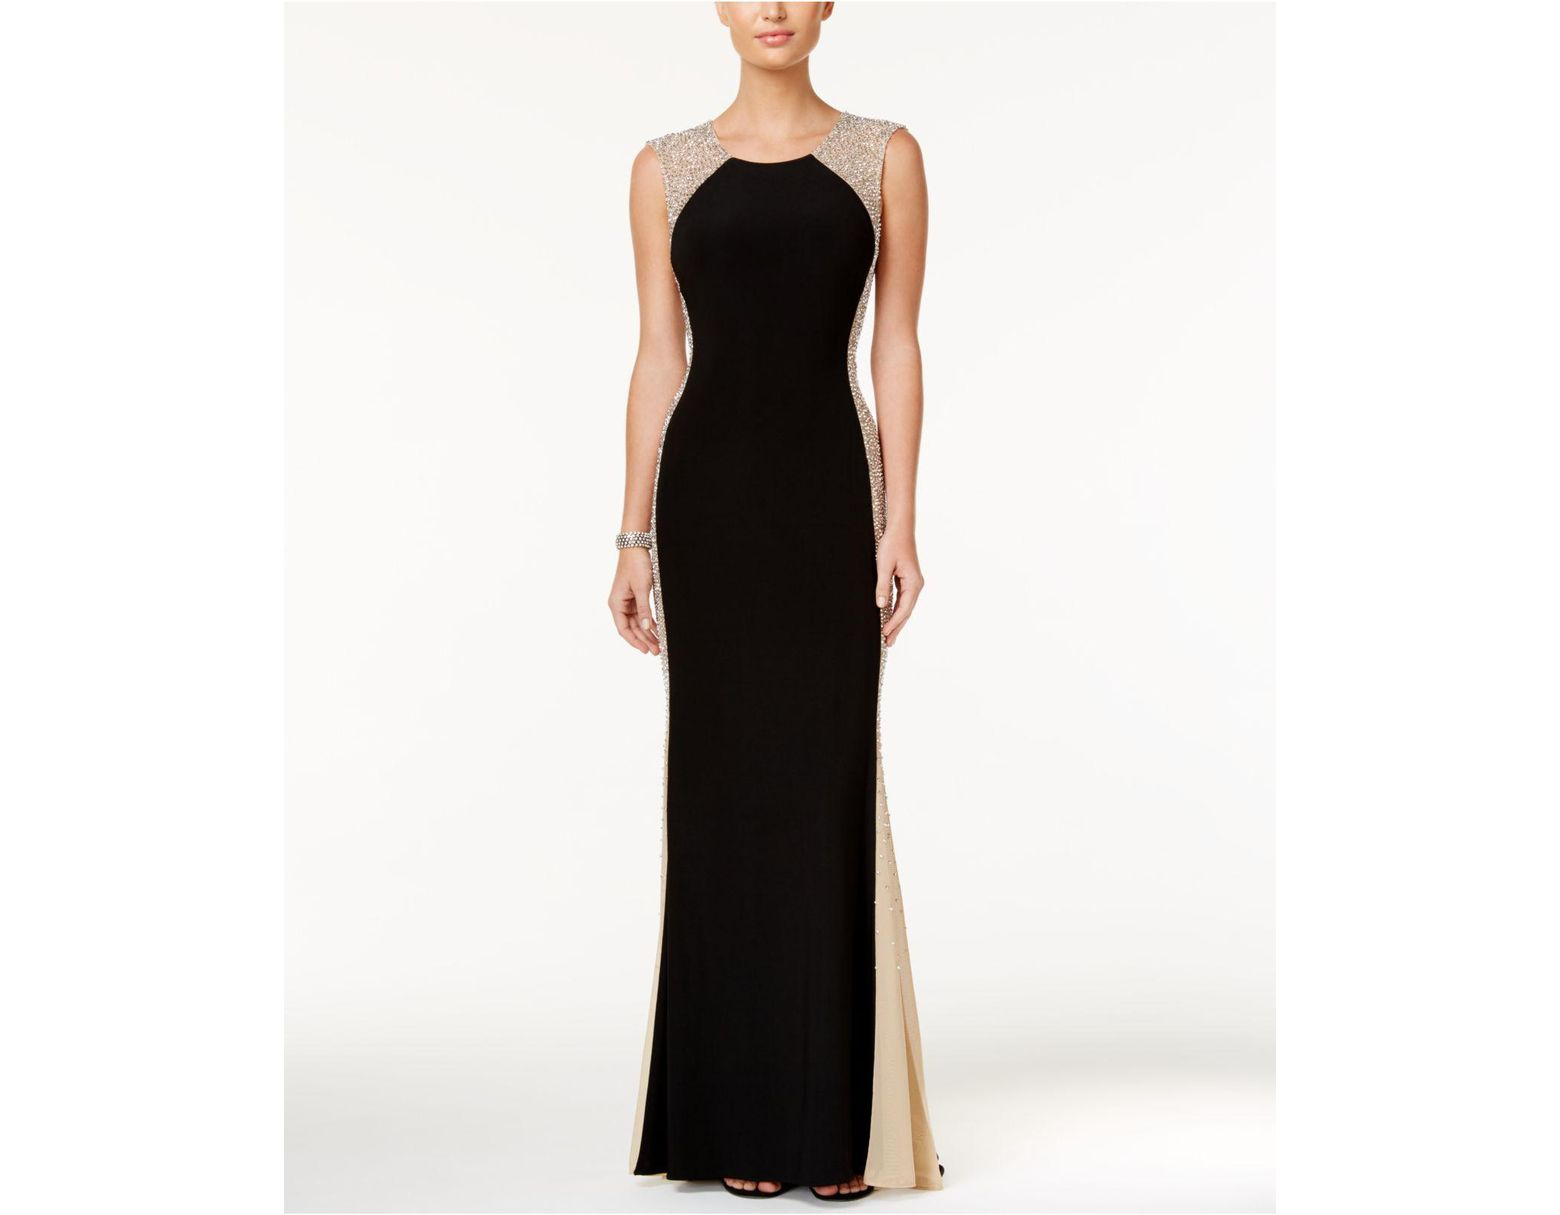 c0d6fe9cffc Xscape Petite Beaded Illusion Gown in Black - Lyst